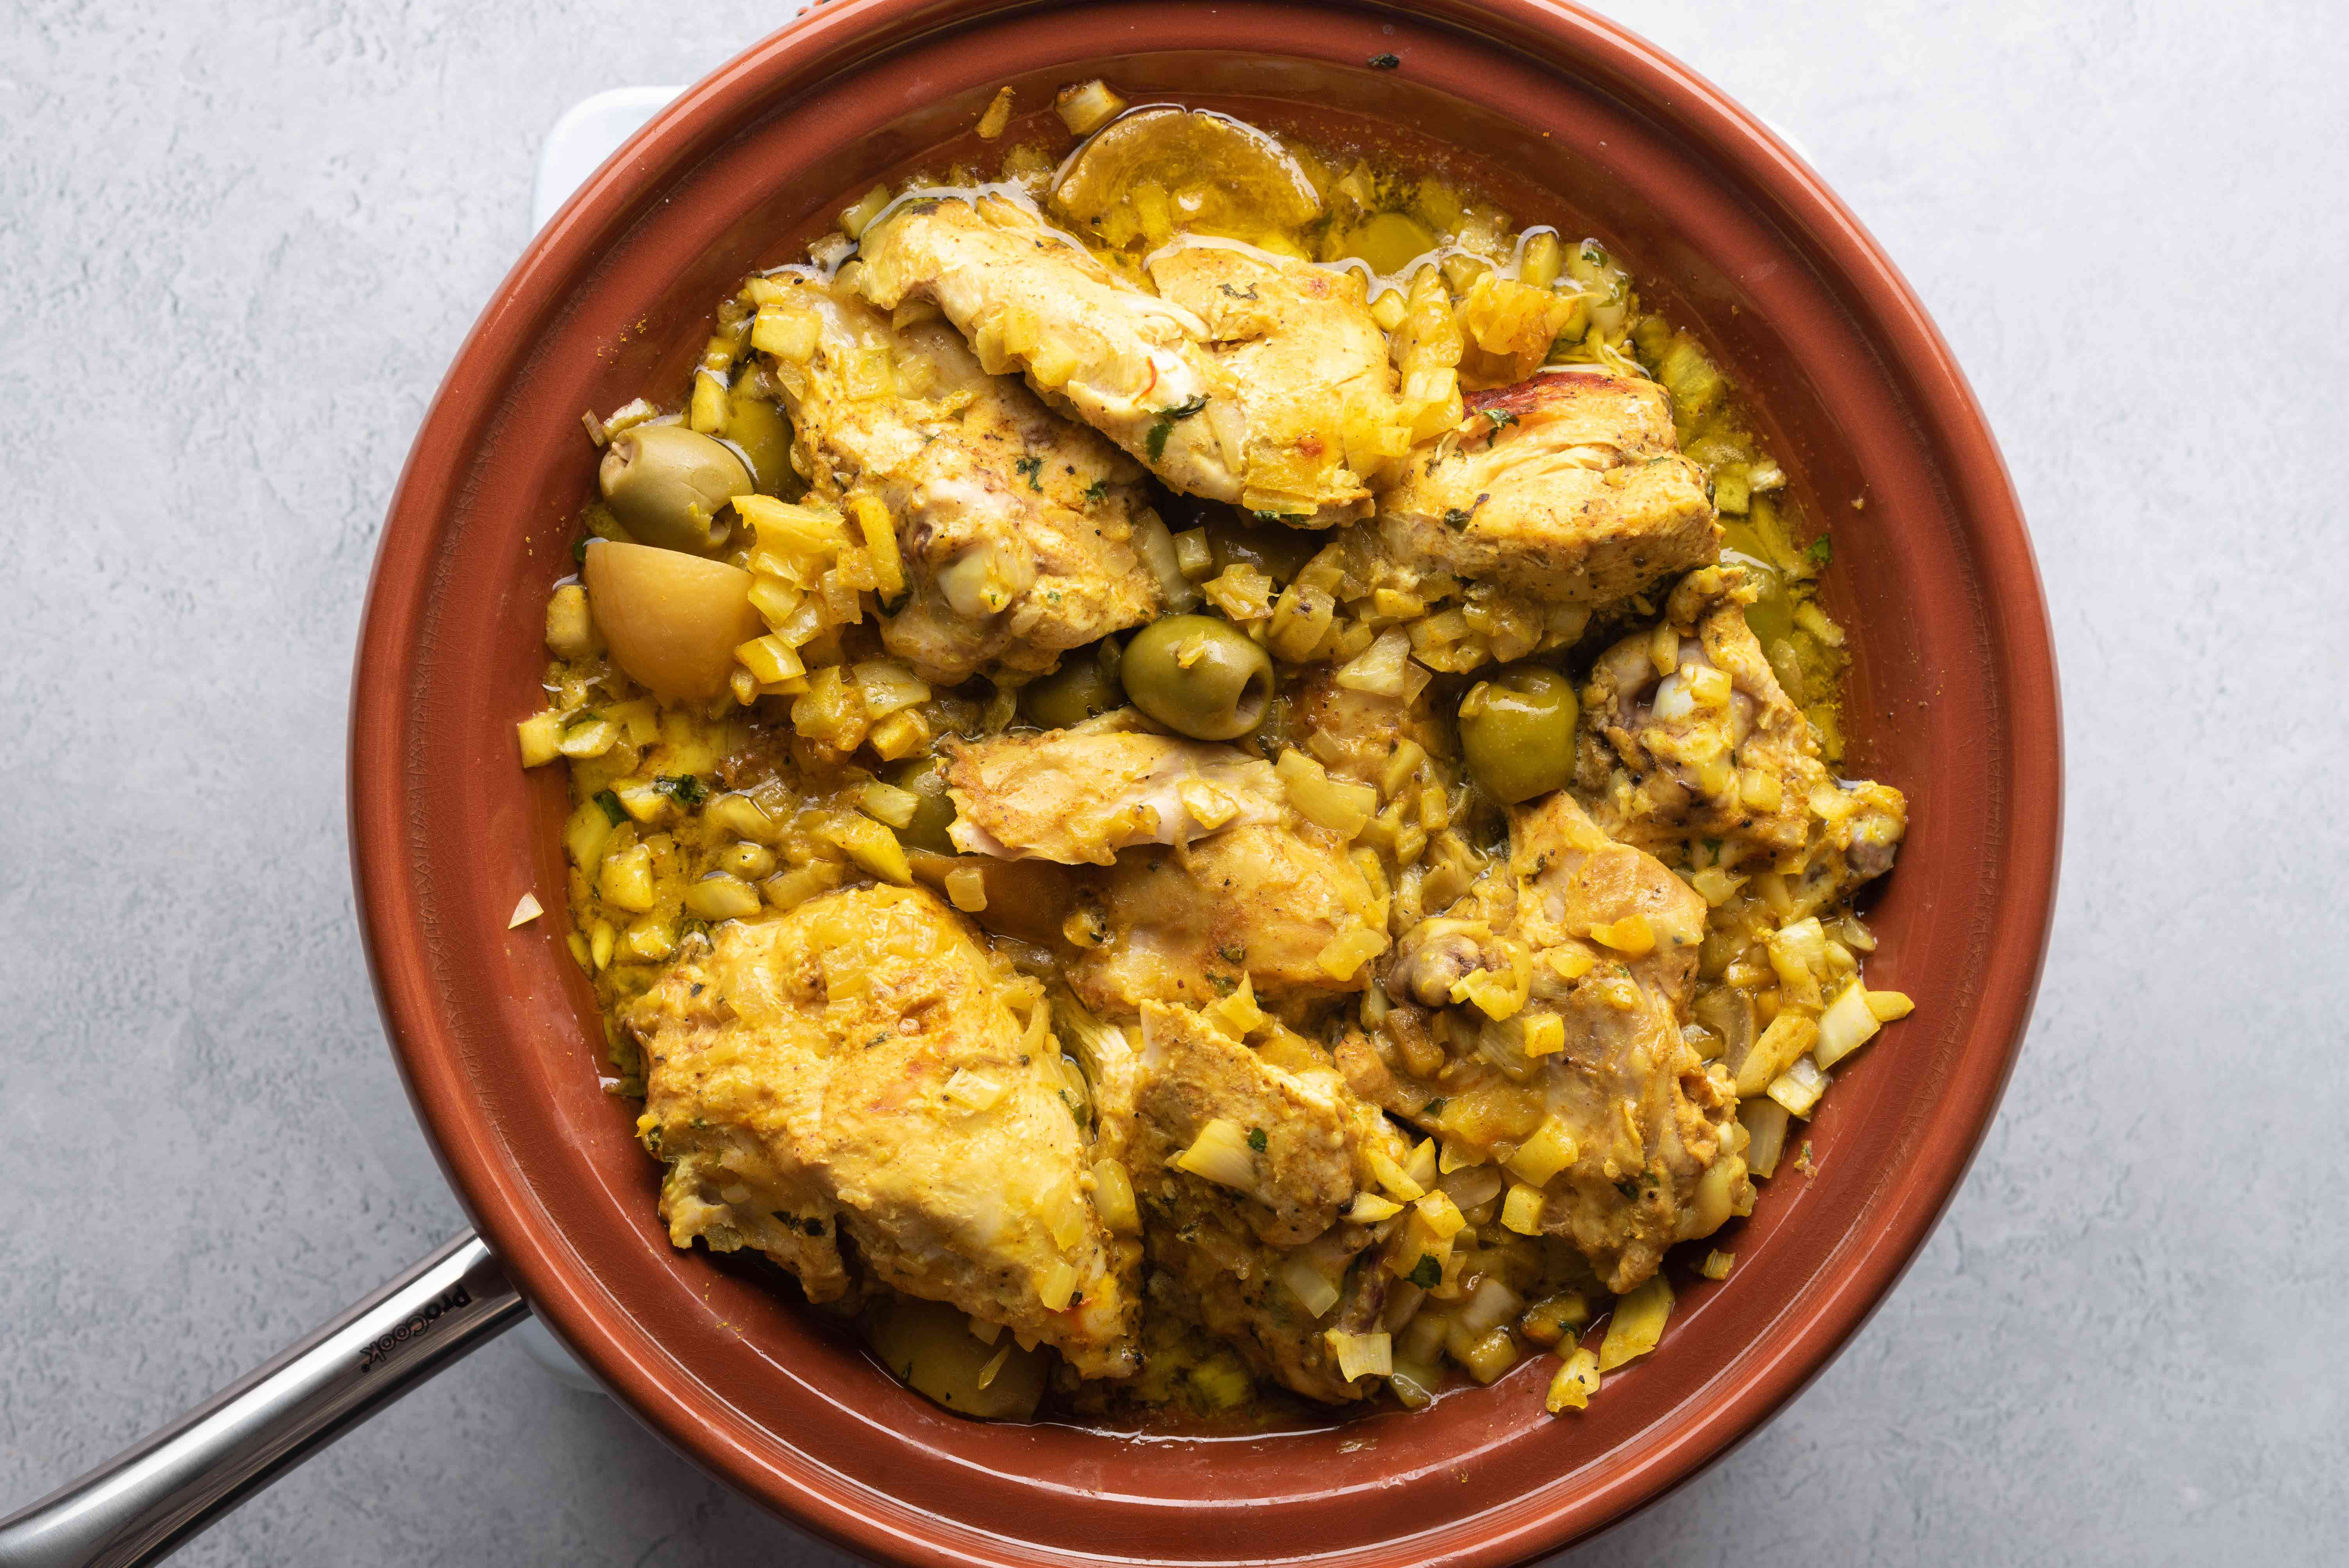 Allow the chicken to cook in the tagine undisturbed